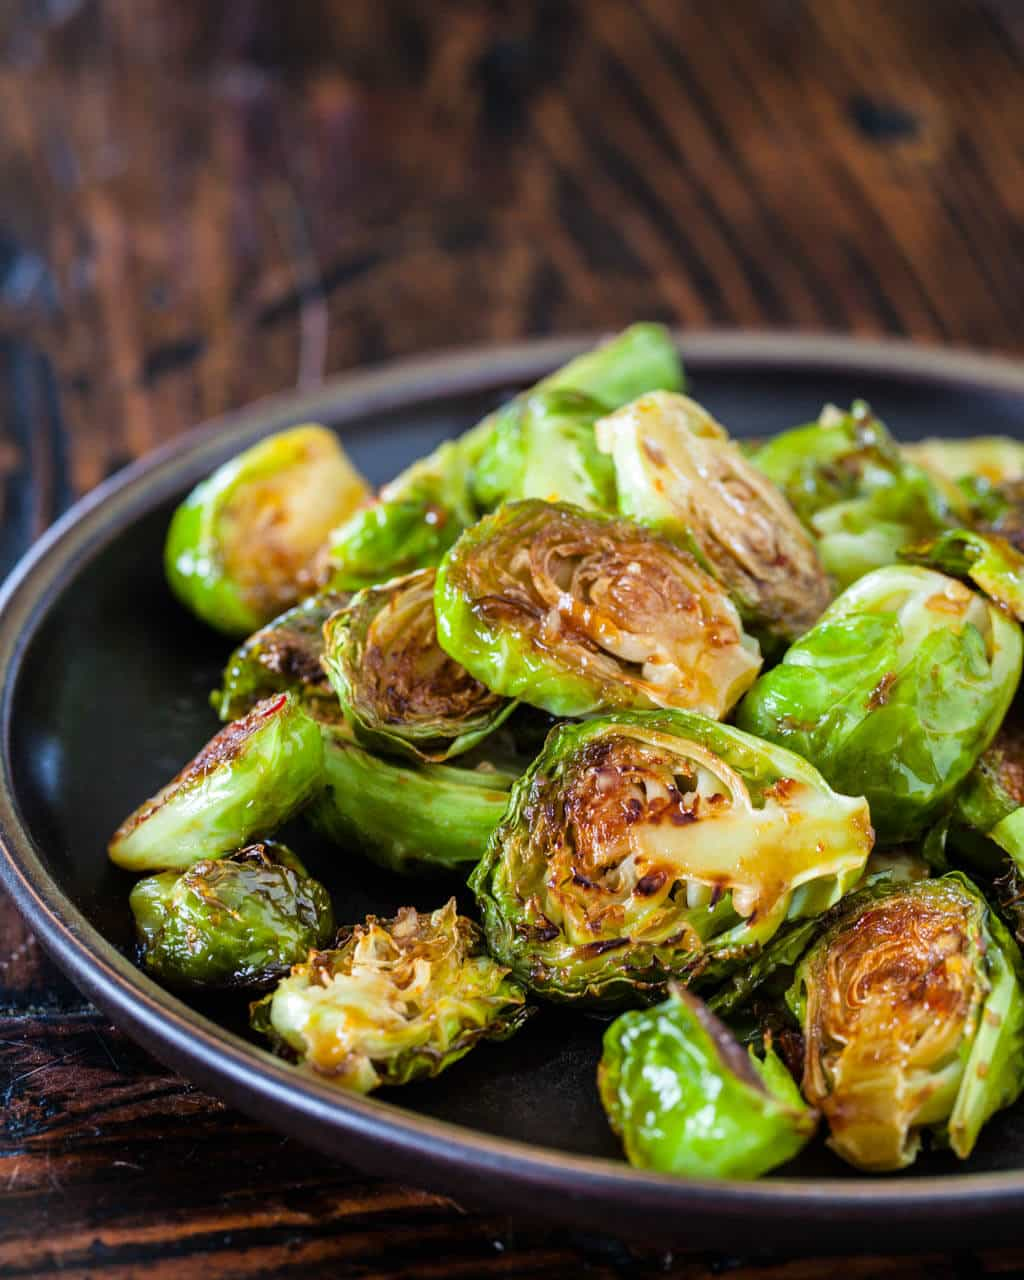 Roasted Brussels Sprouts, Sweet Chili Sauce - Steamy Kitchen Recipes